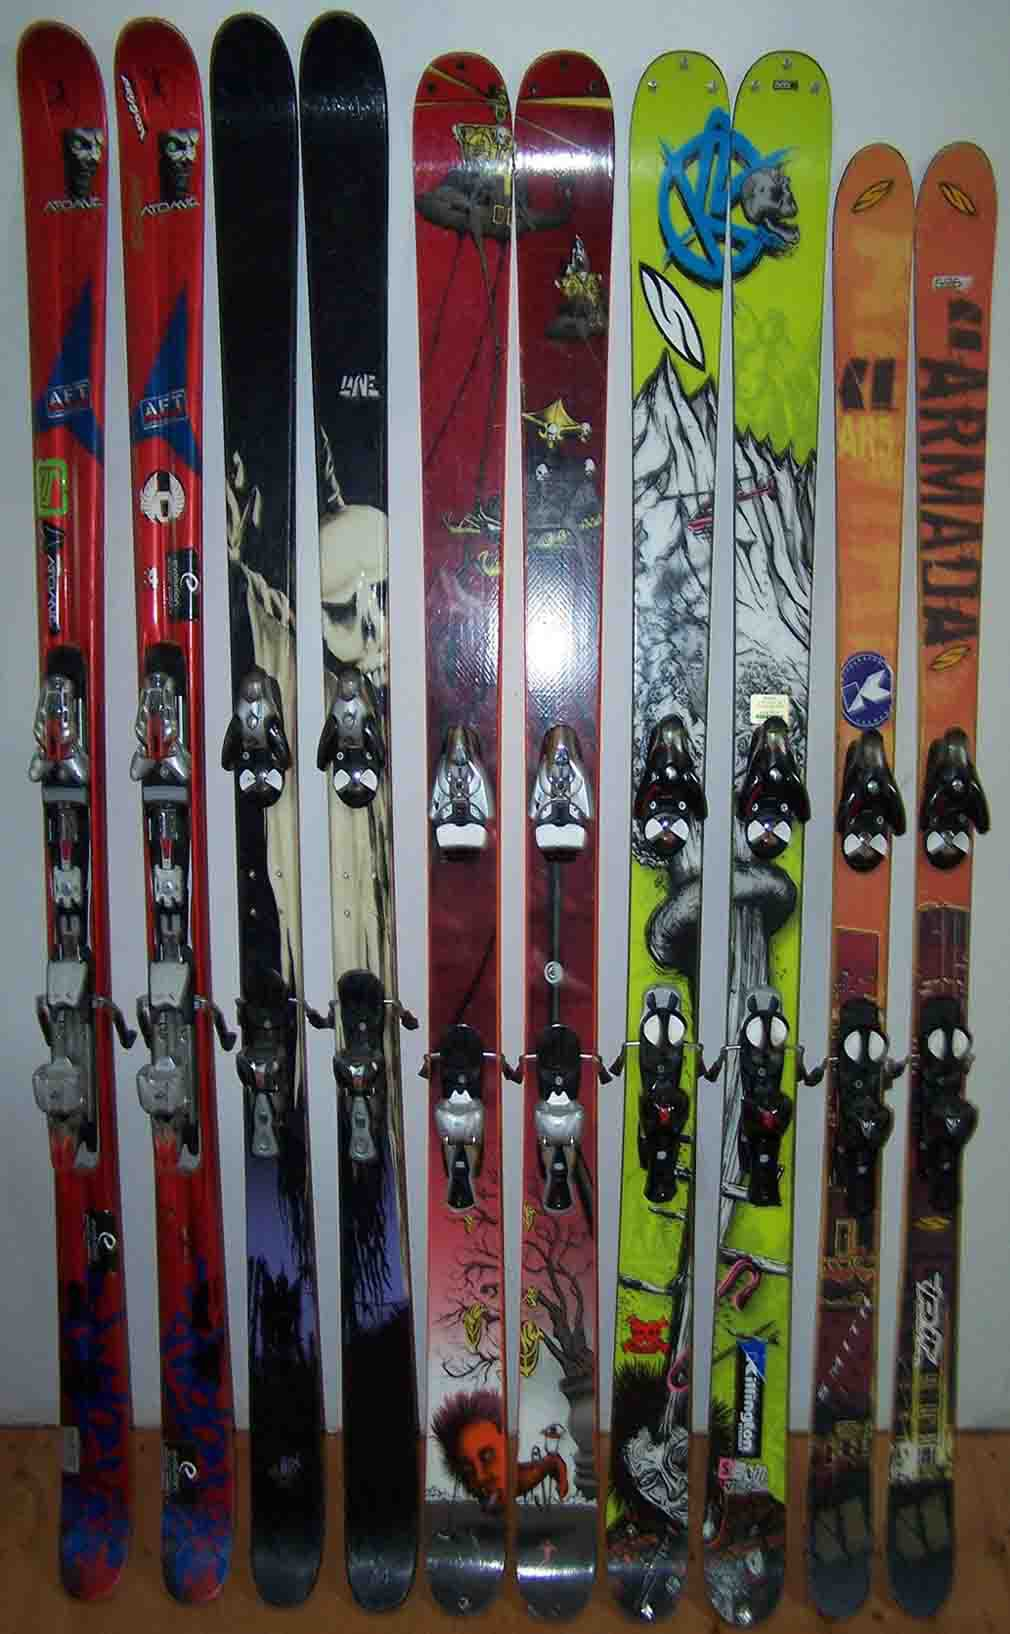 My skis + bother skis